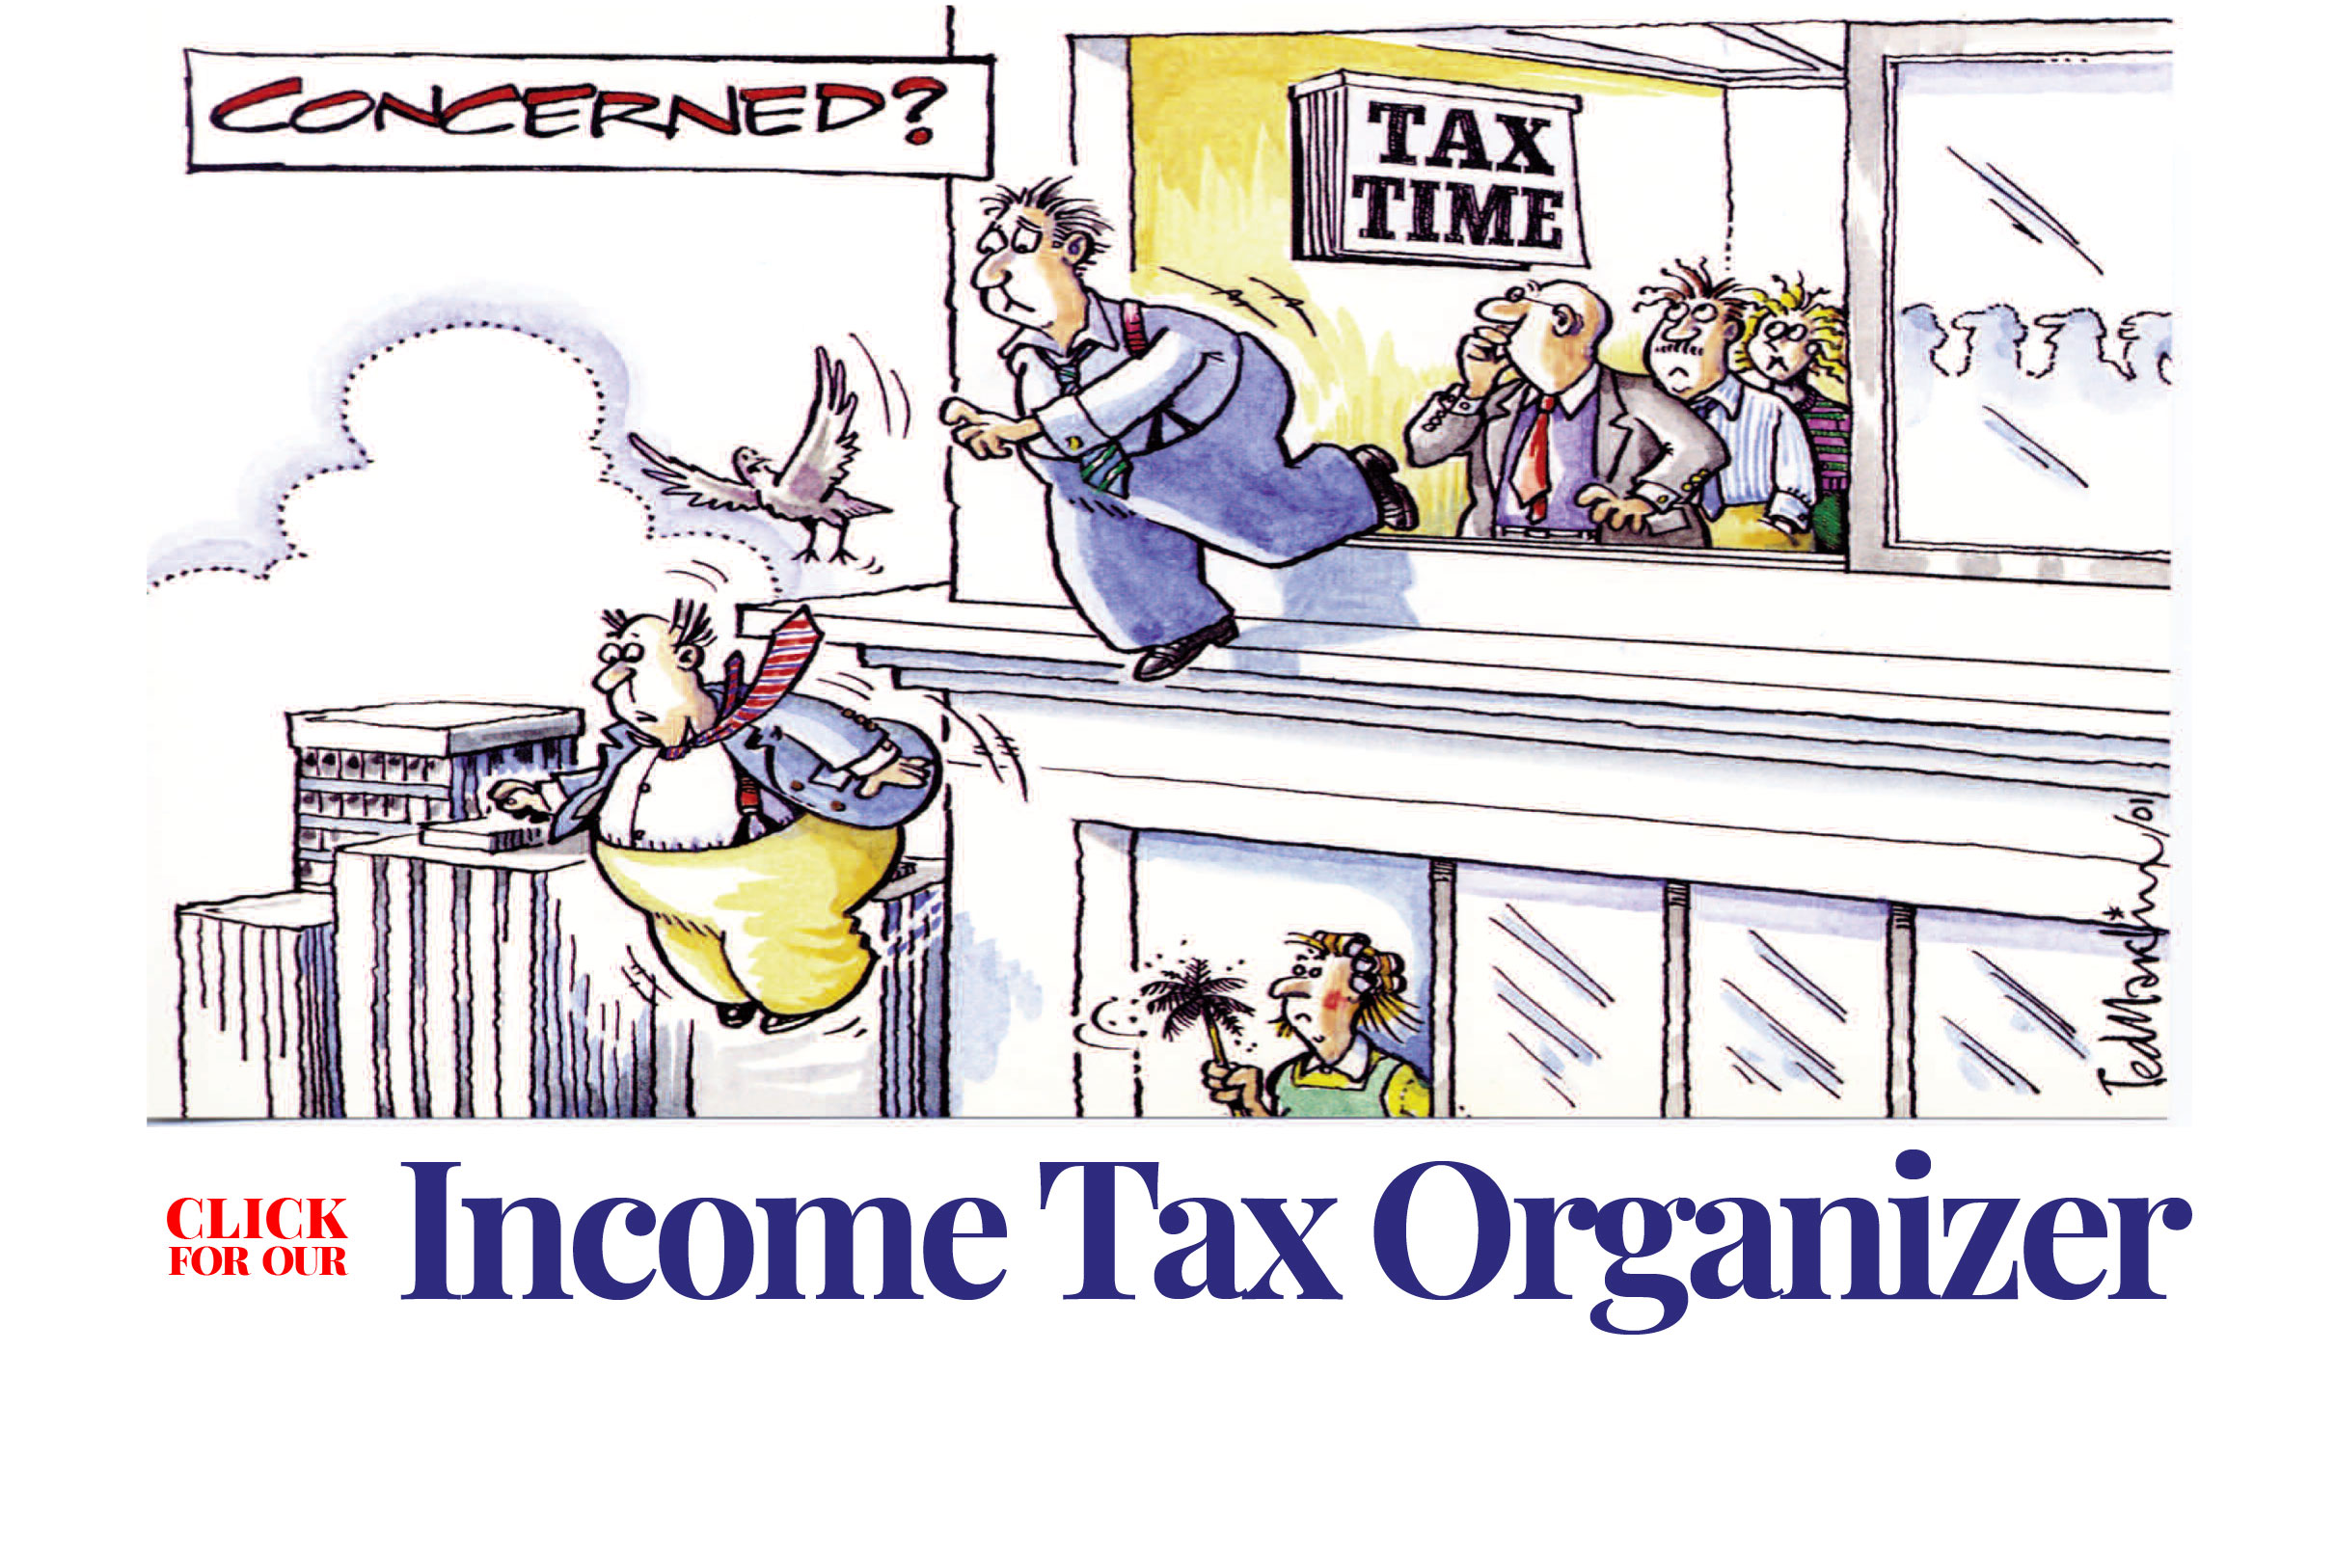 Income-Tax organizer